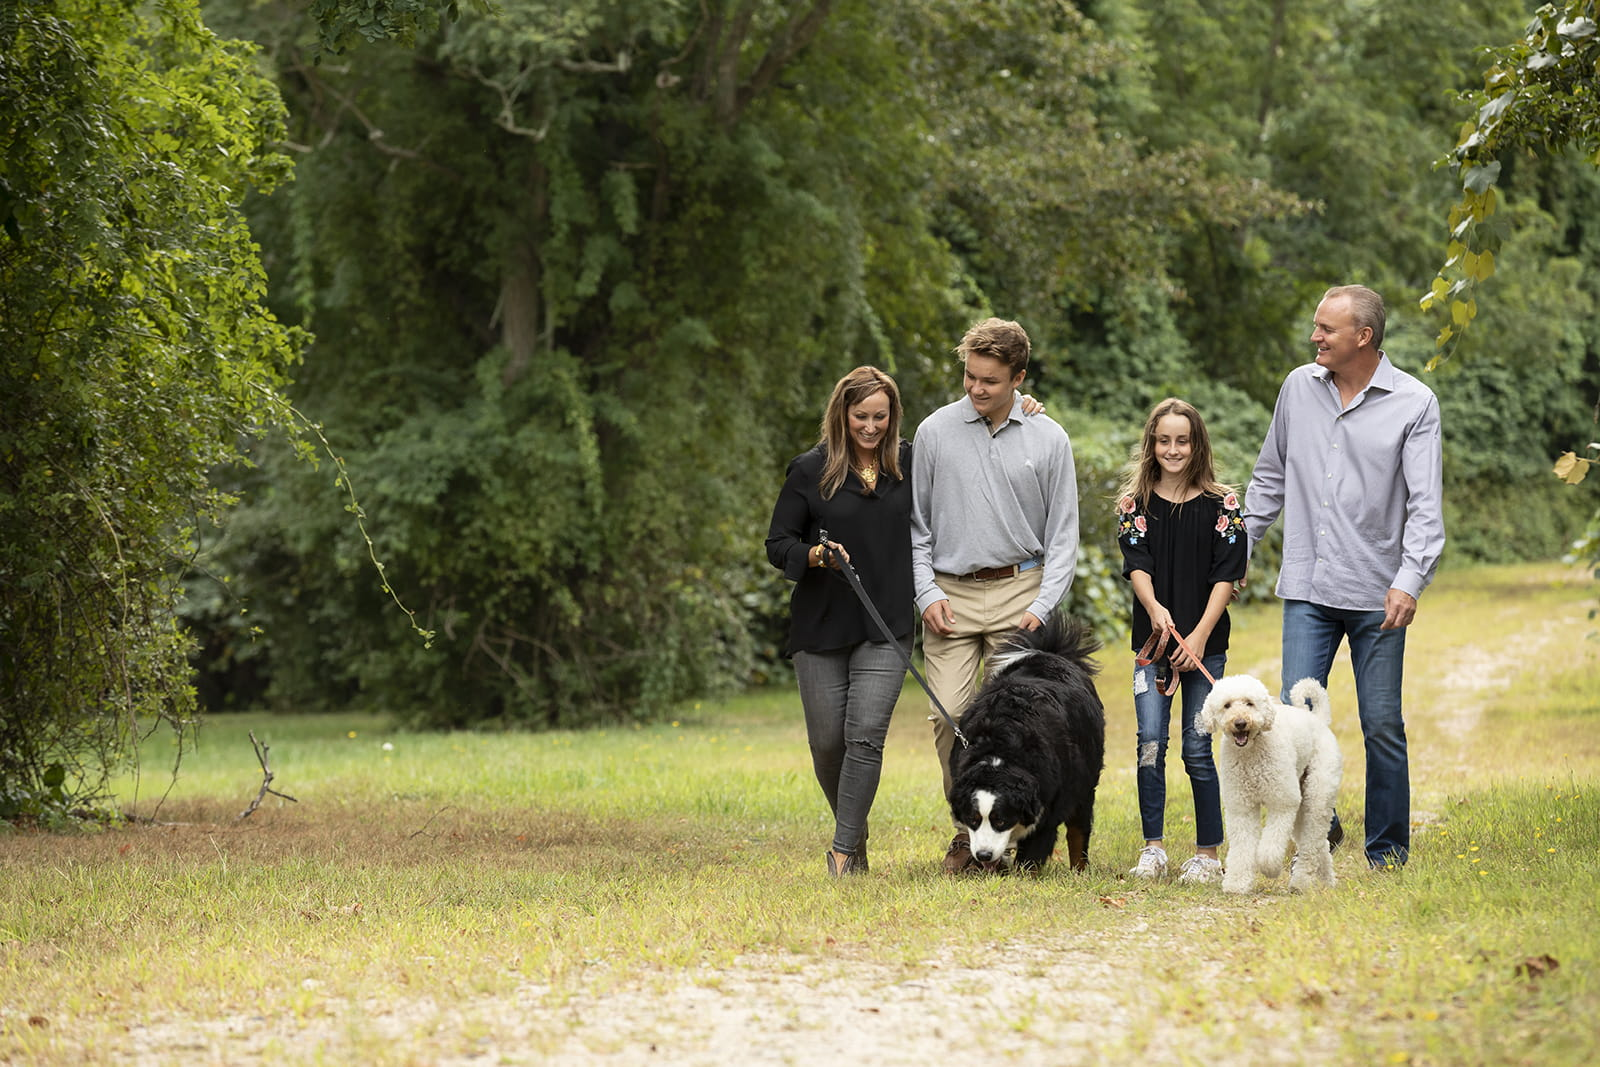 Logan and his family walking their dogs